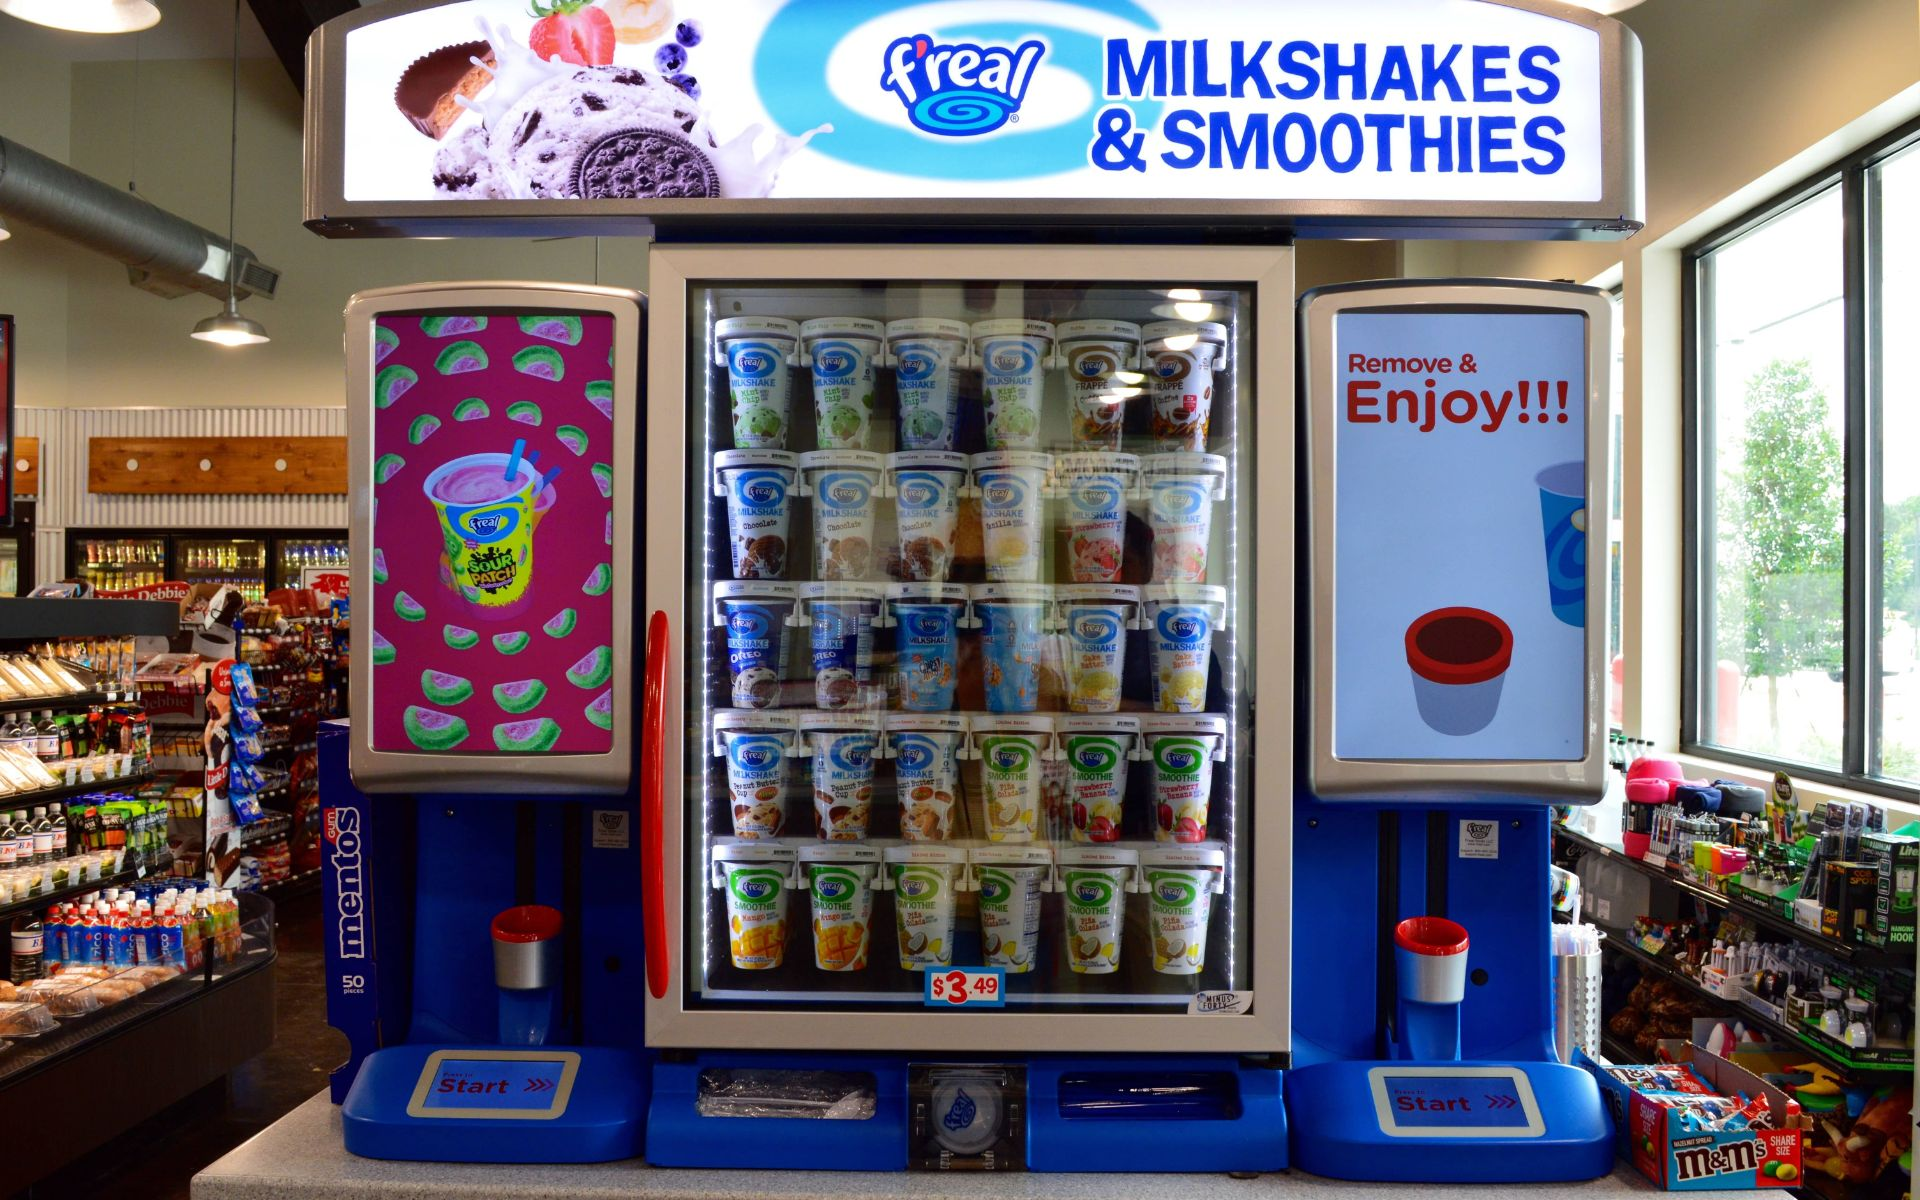 F'real milkshake and smoothie machine on a counter-top